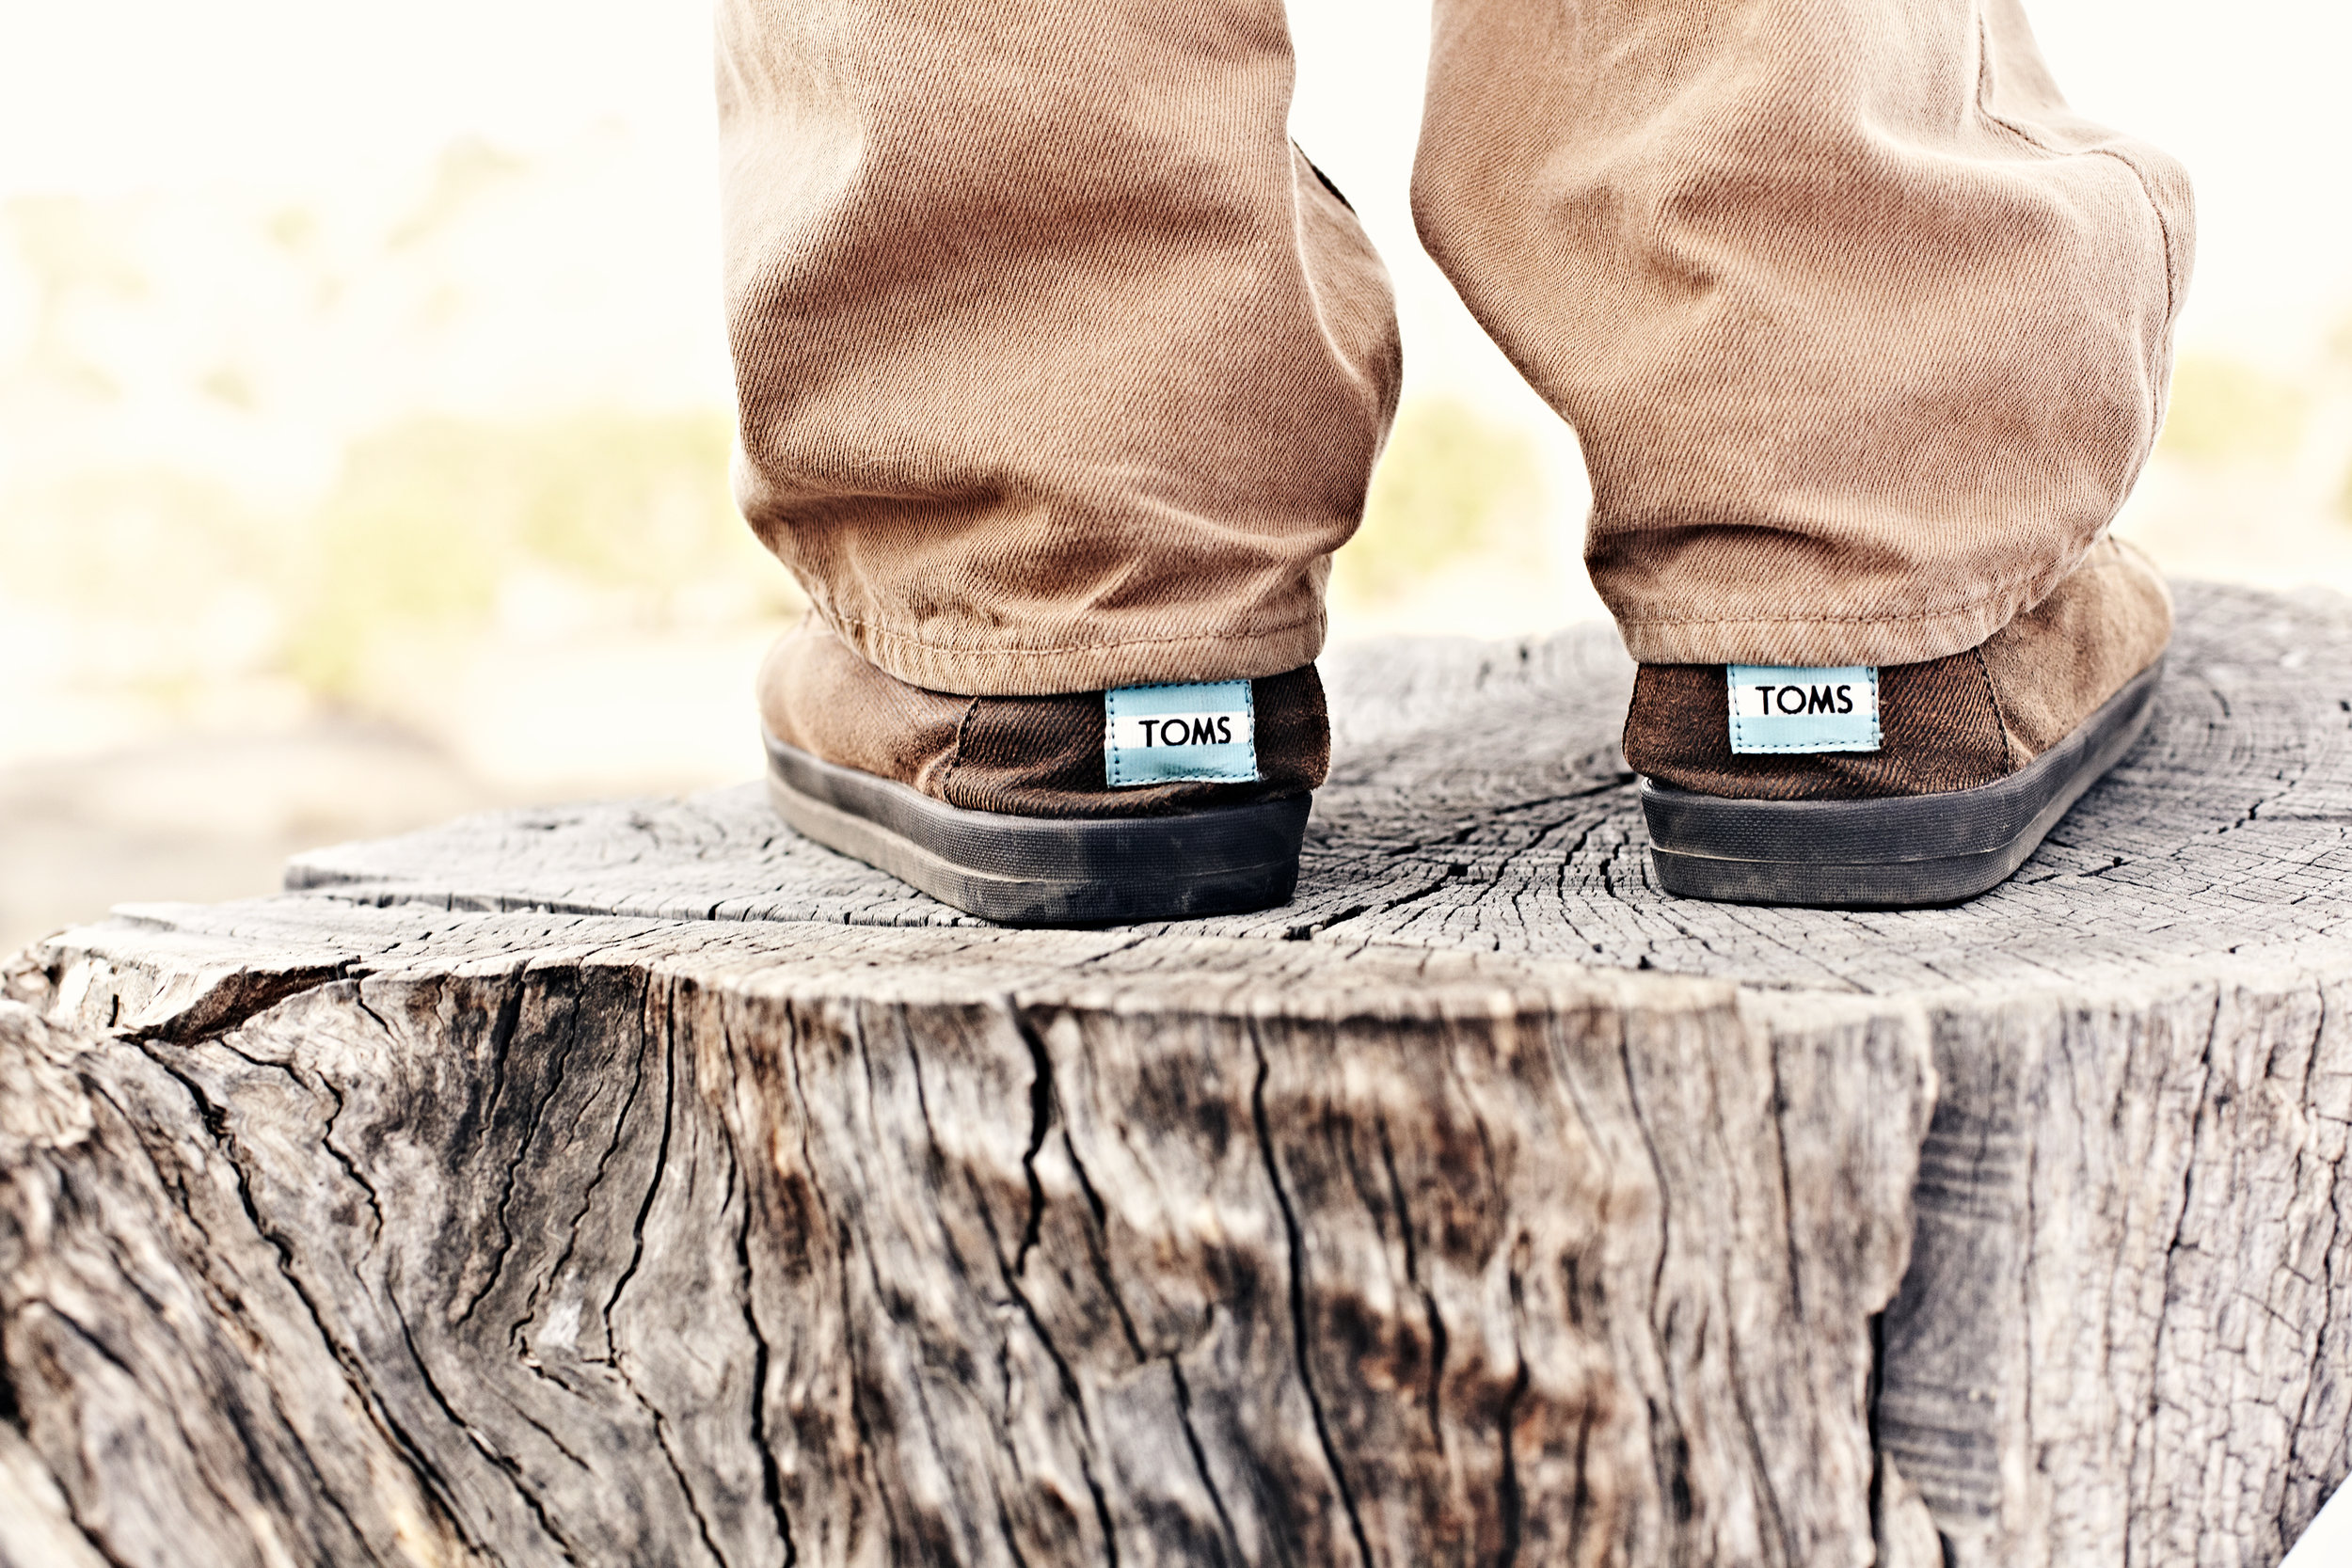 Man standing on tree stump in Tom's shoes